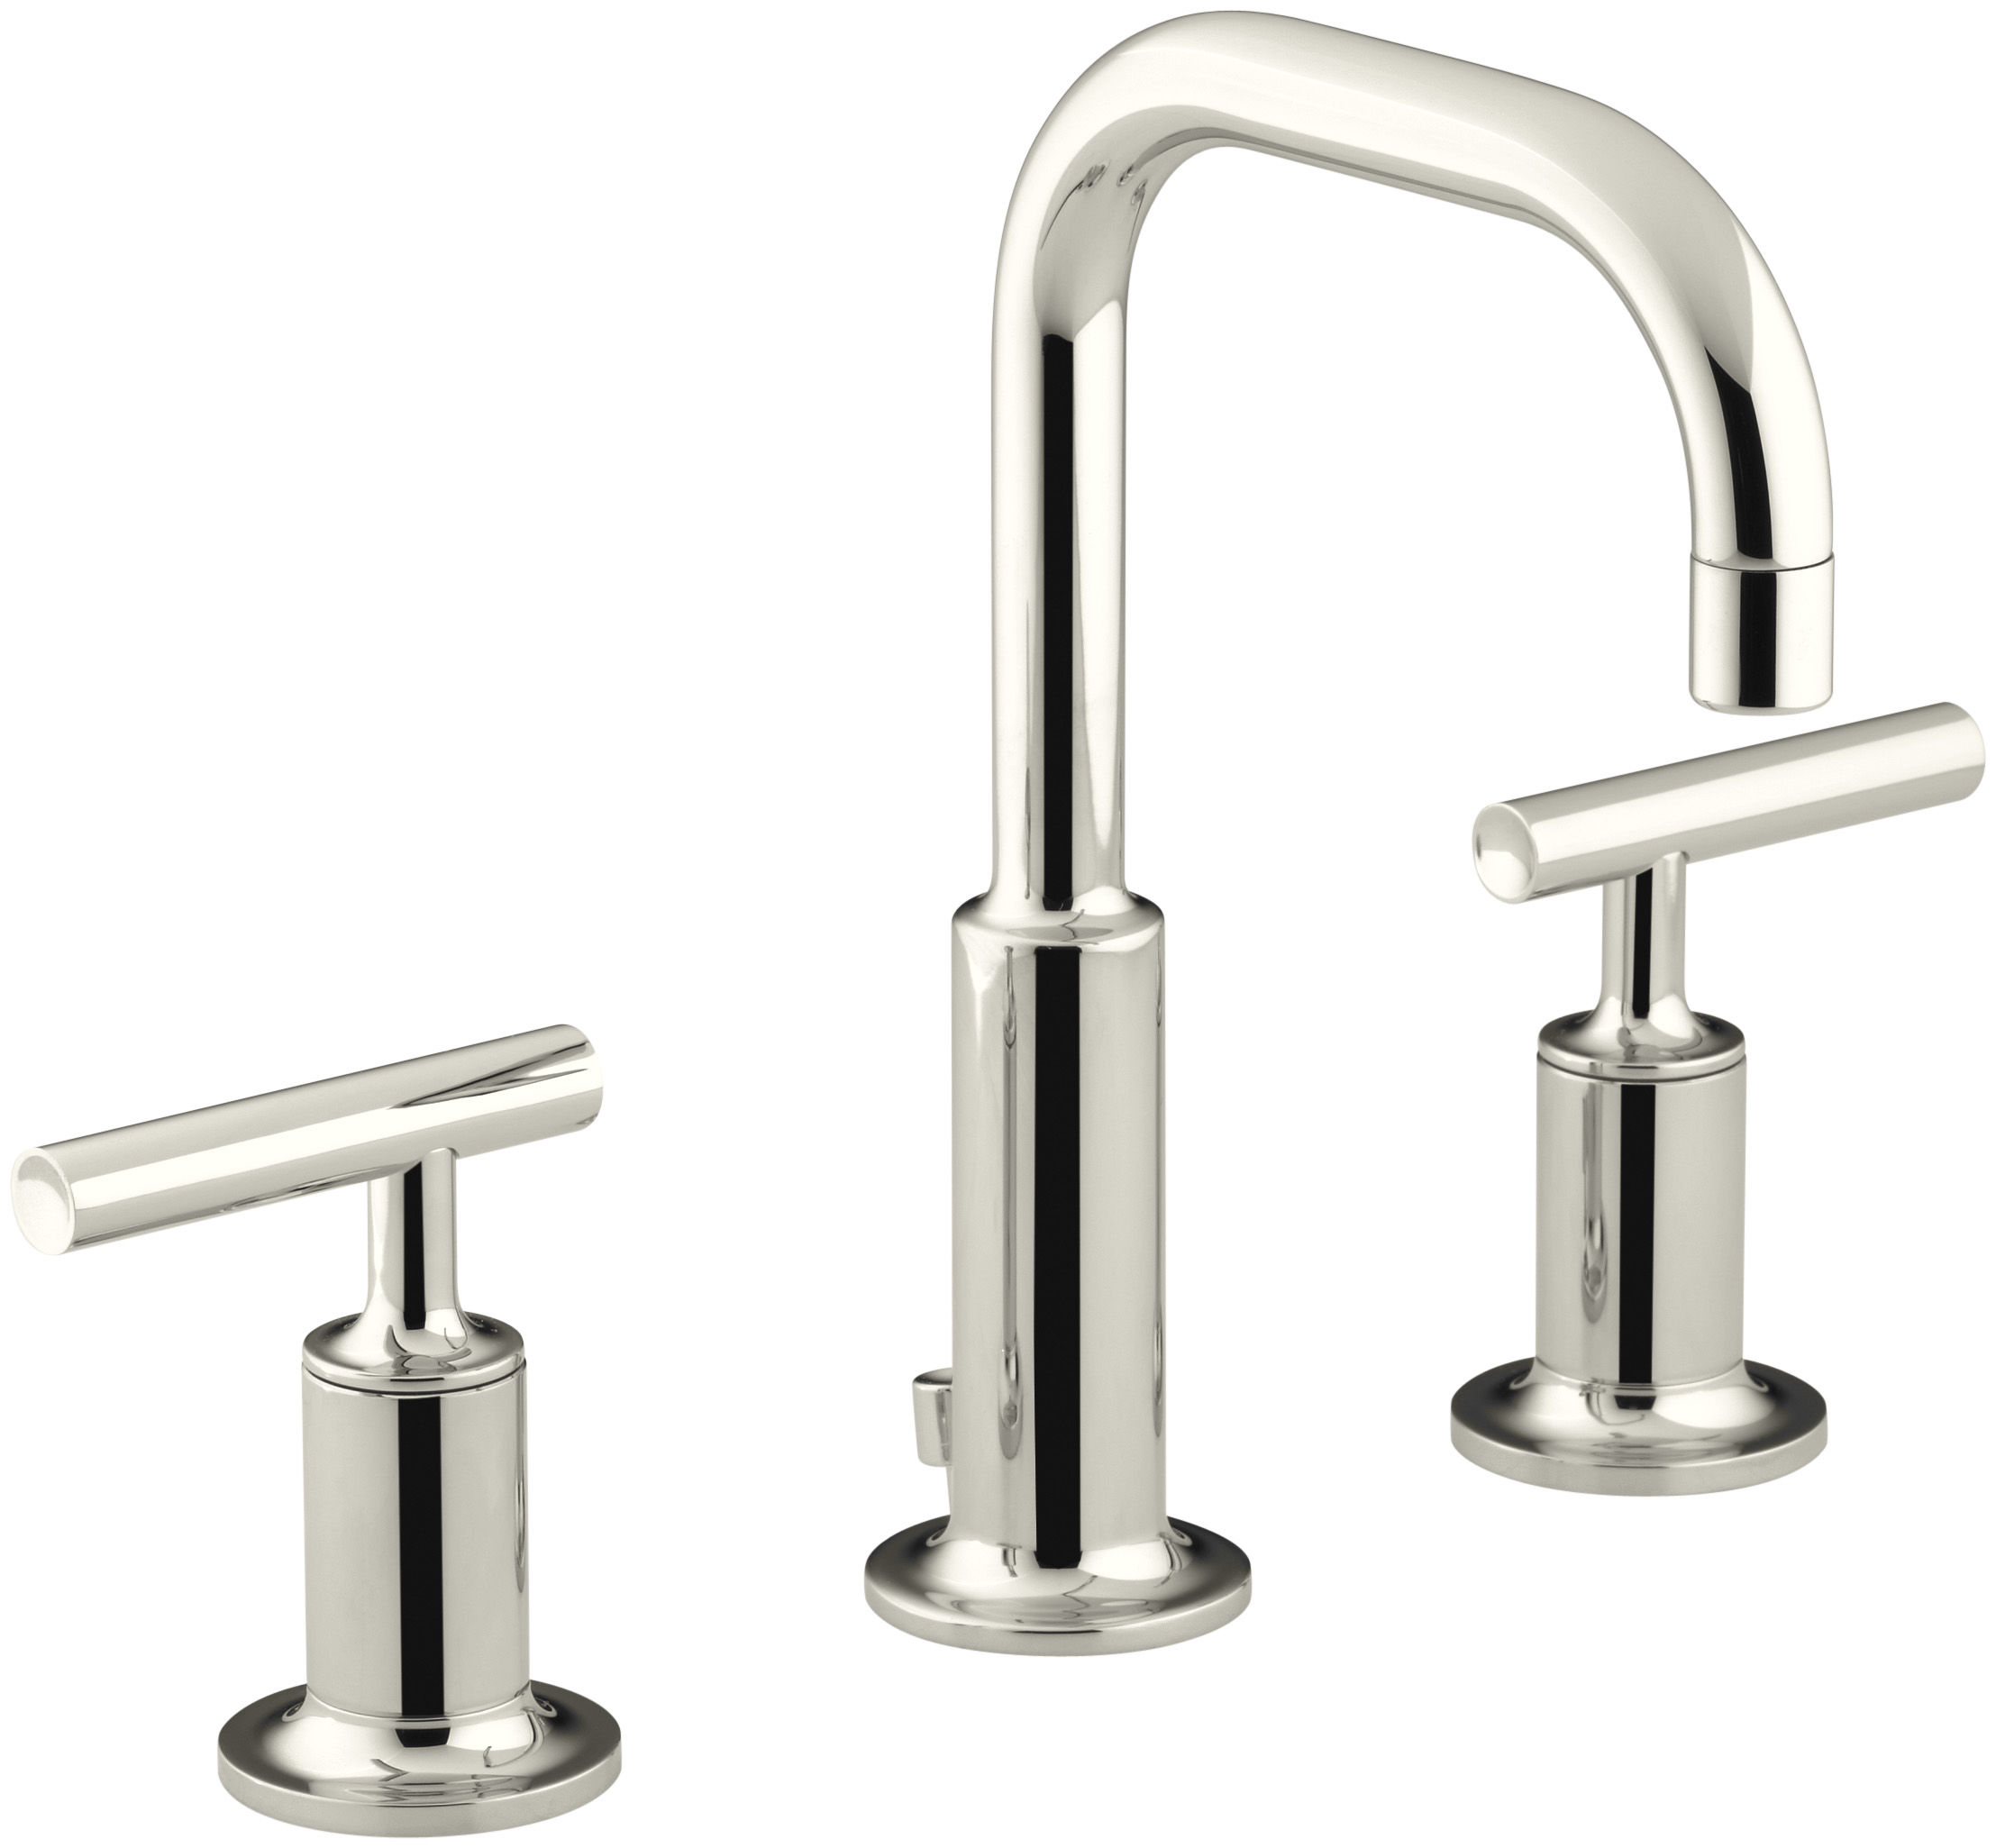 Kohler K-14406-4-CP Polished Chrome Purist Widespread Bathroom ...